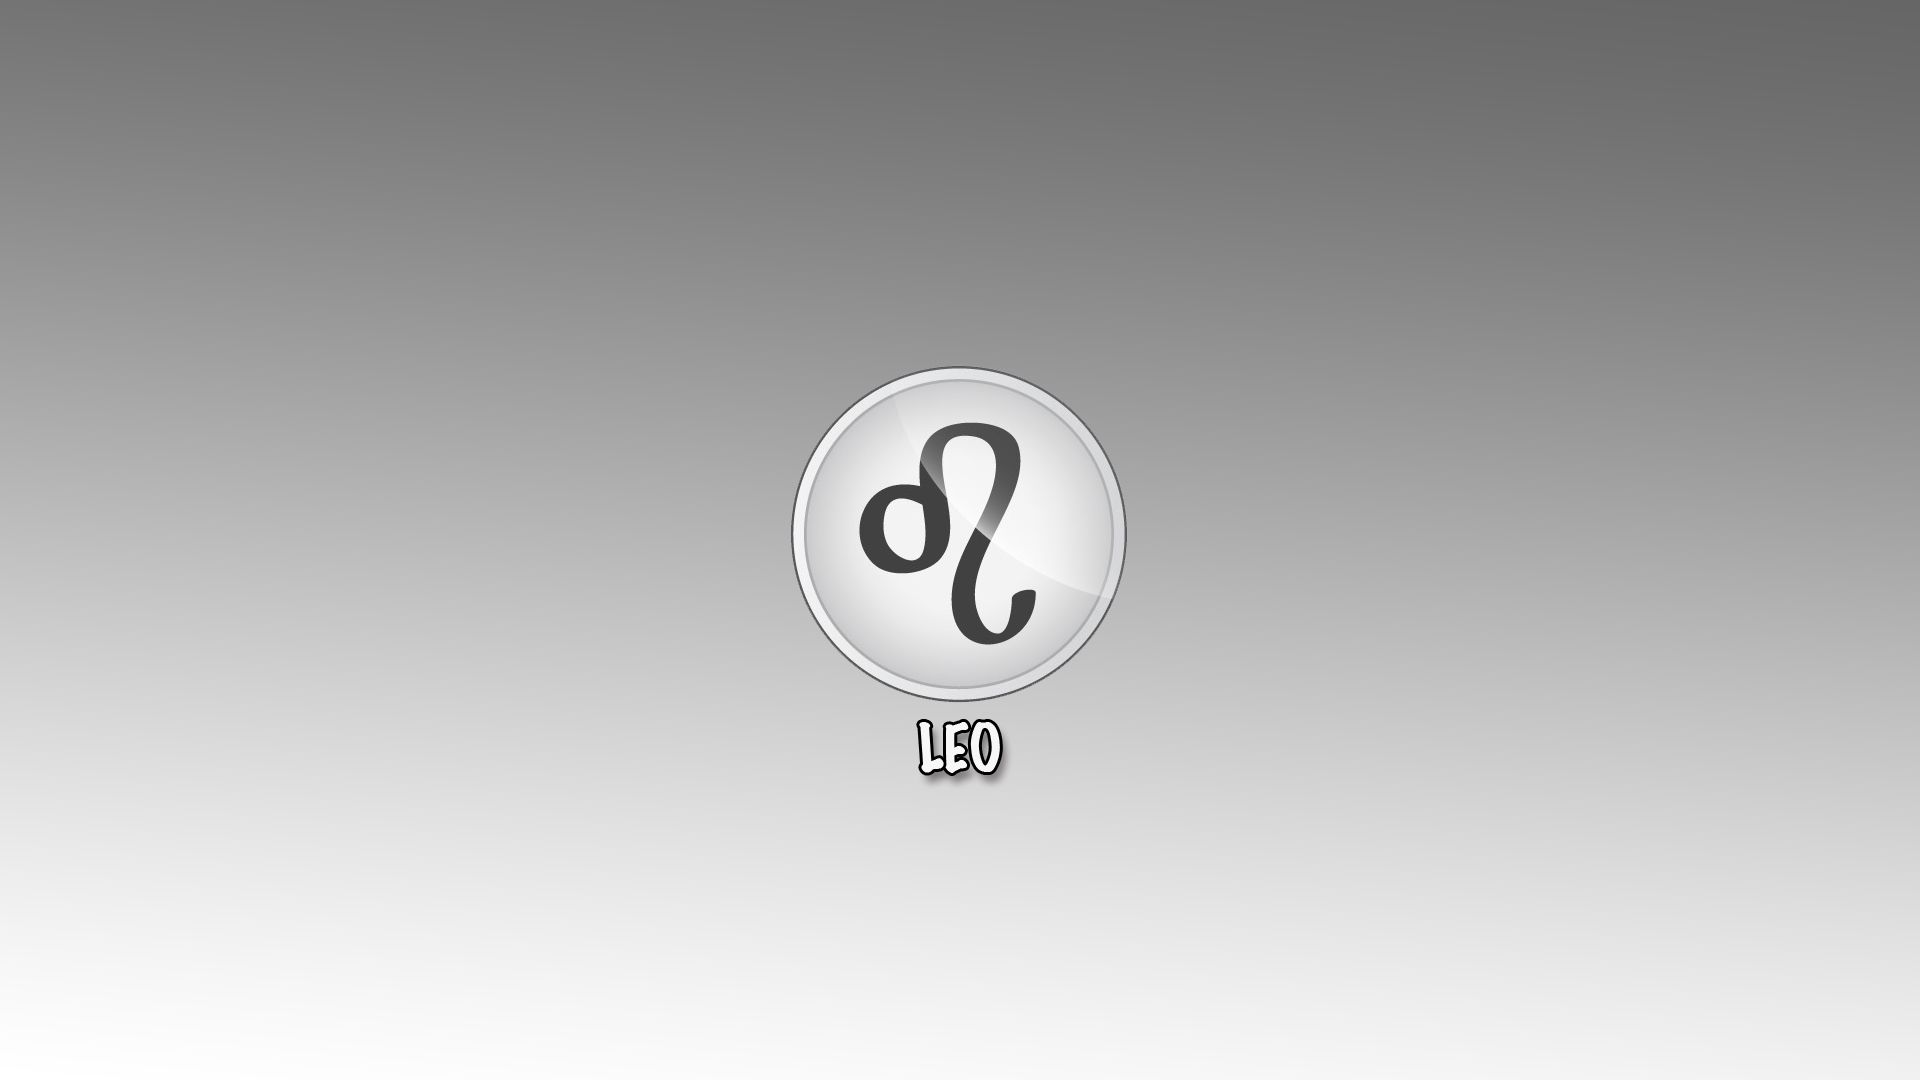 Download Leo Zodiac Live Wallpaper For Android Appszoom 1920x1080